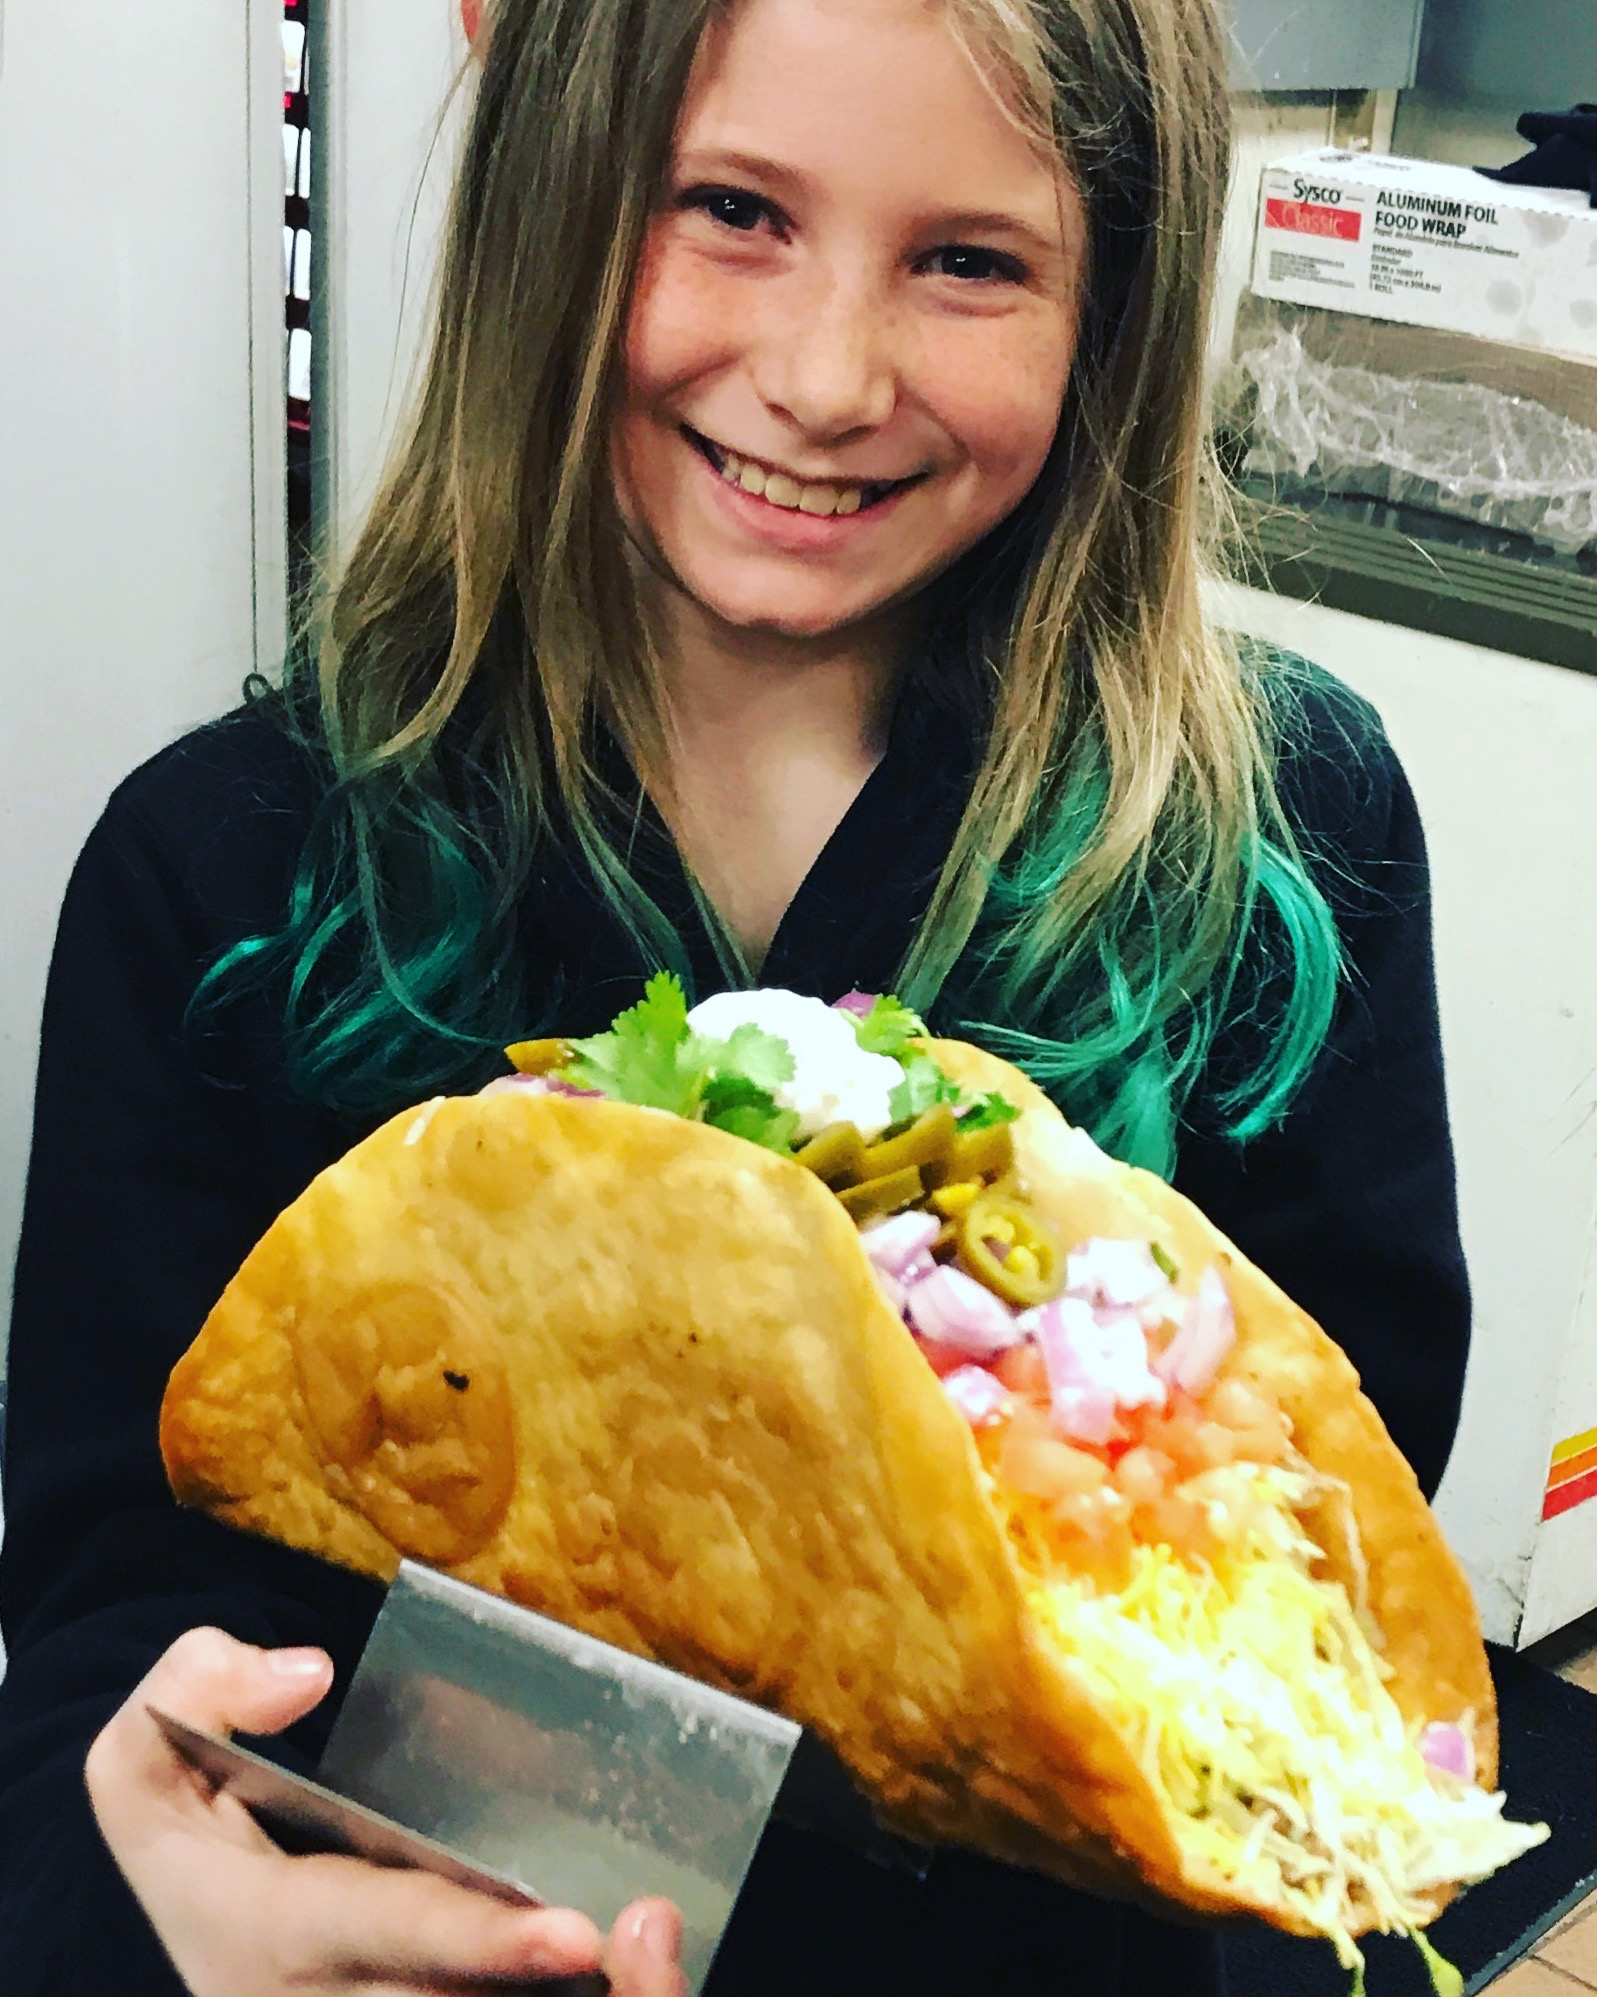 TWO POUND TACO - $15  EAT 3 & THEY ARE FREE!